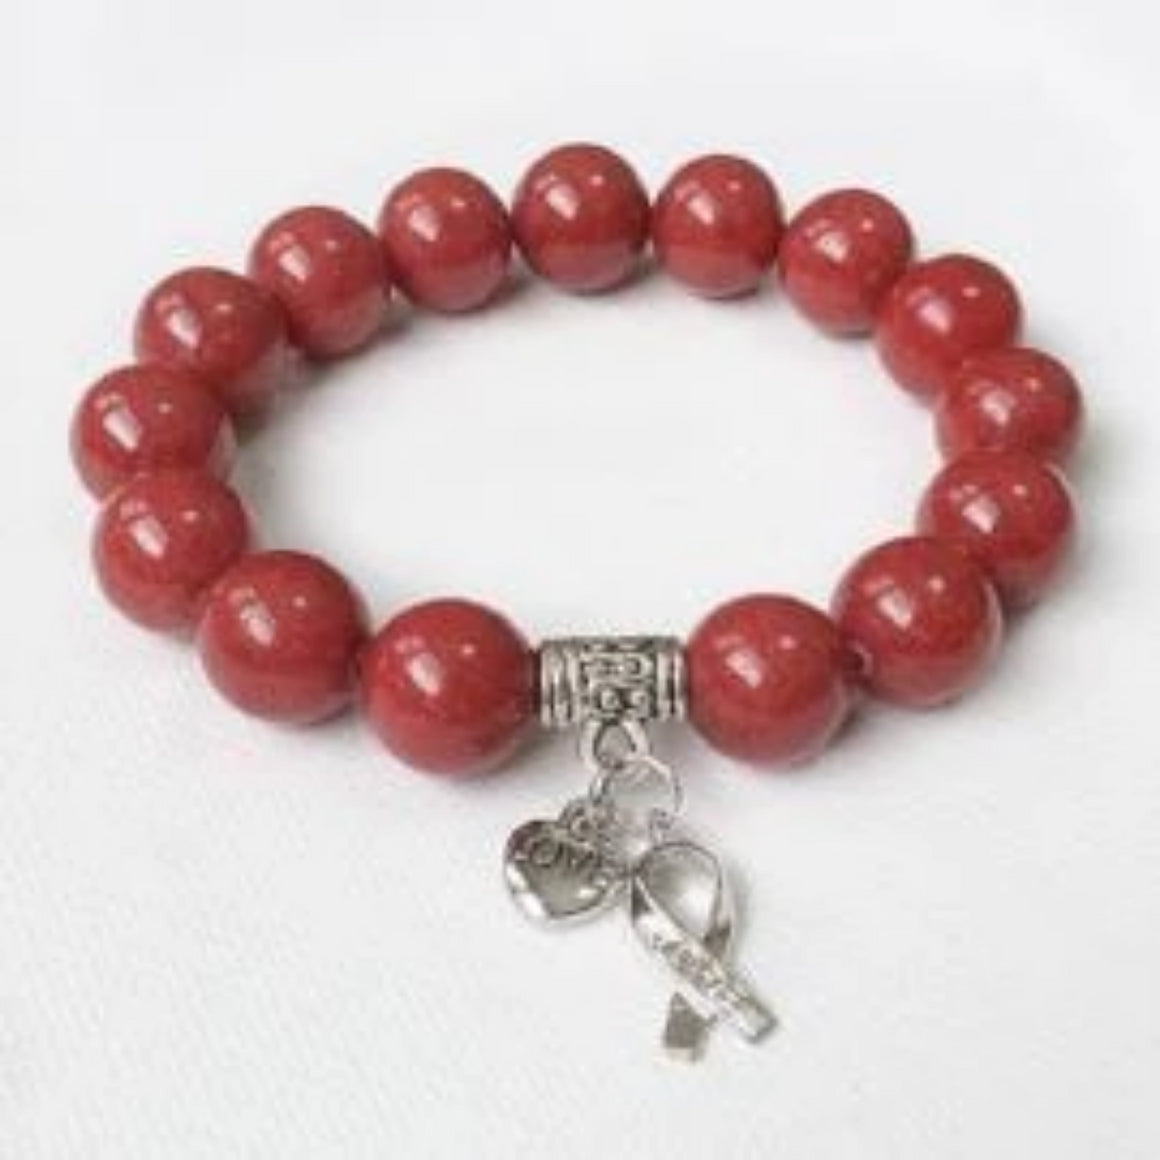 Awareness Collection - Blood Cancer Awareness bracelet, Hope ribbon